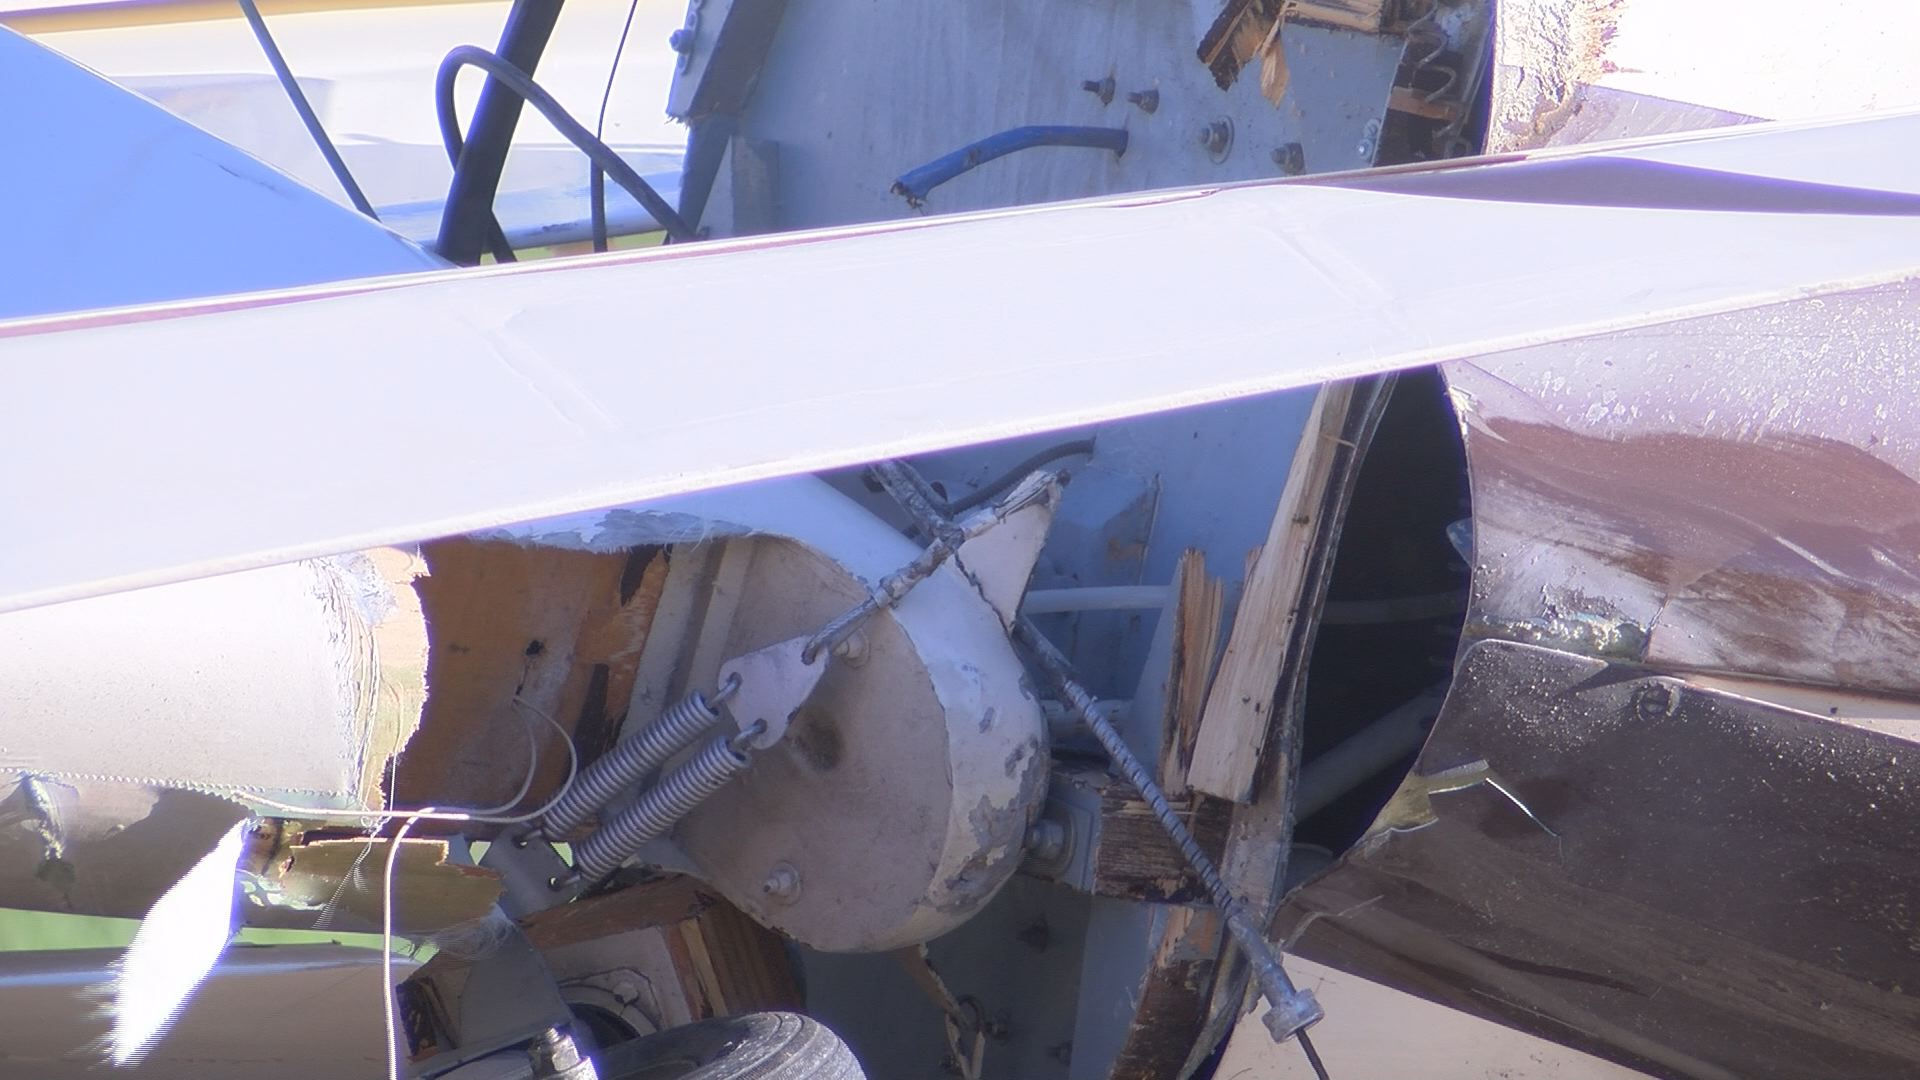 More damaged debris from the plane